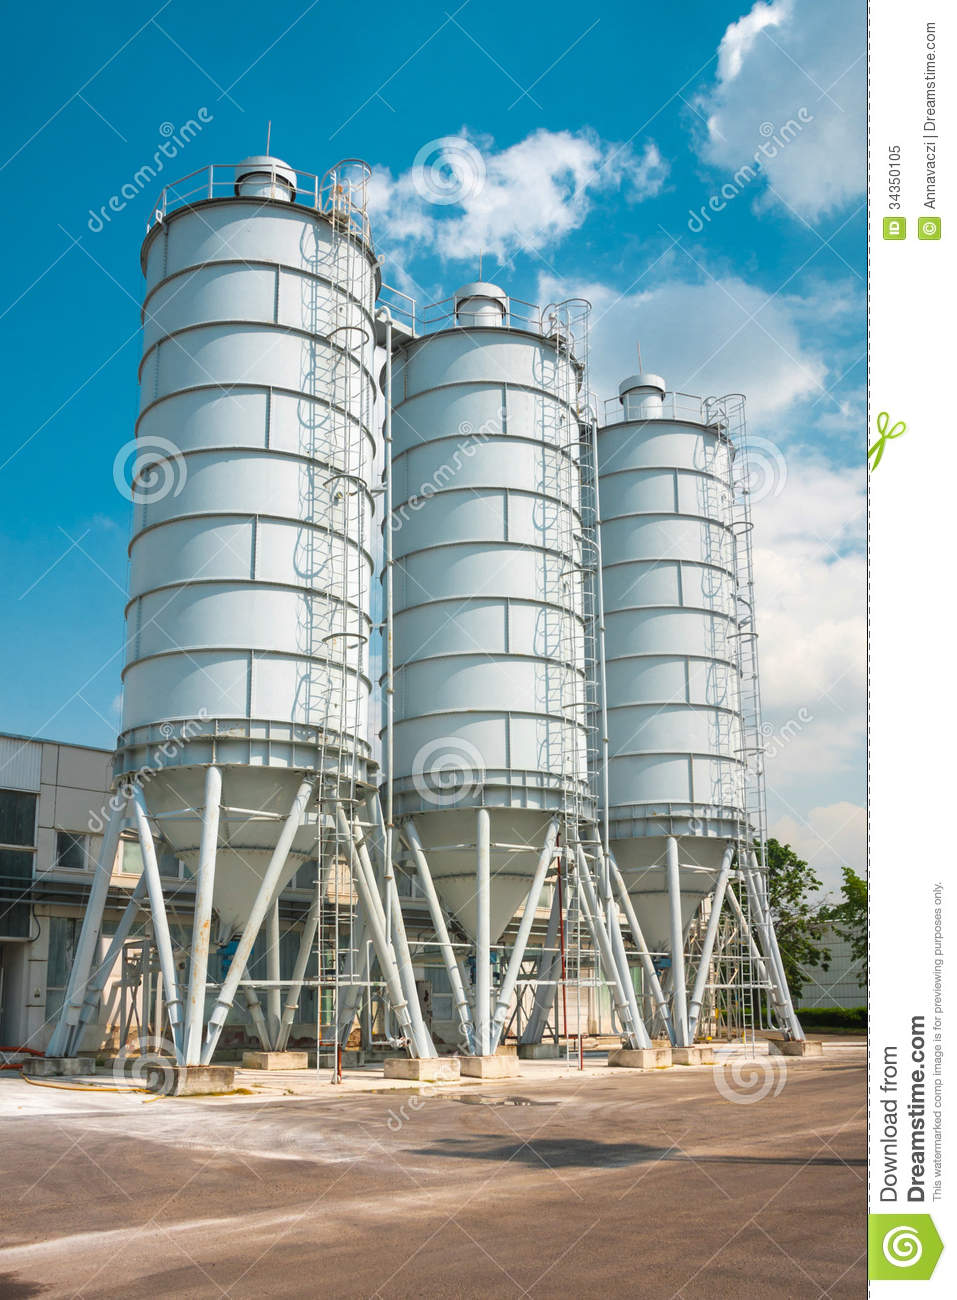 Concrete Silo Design Download